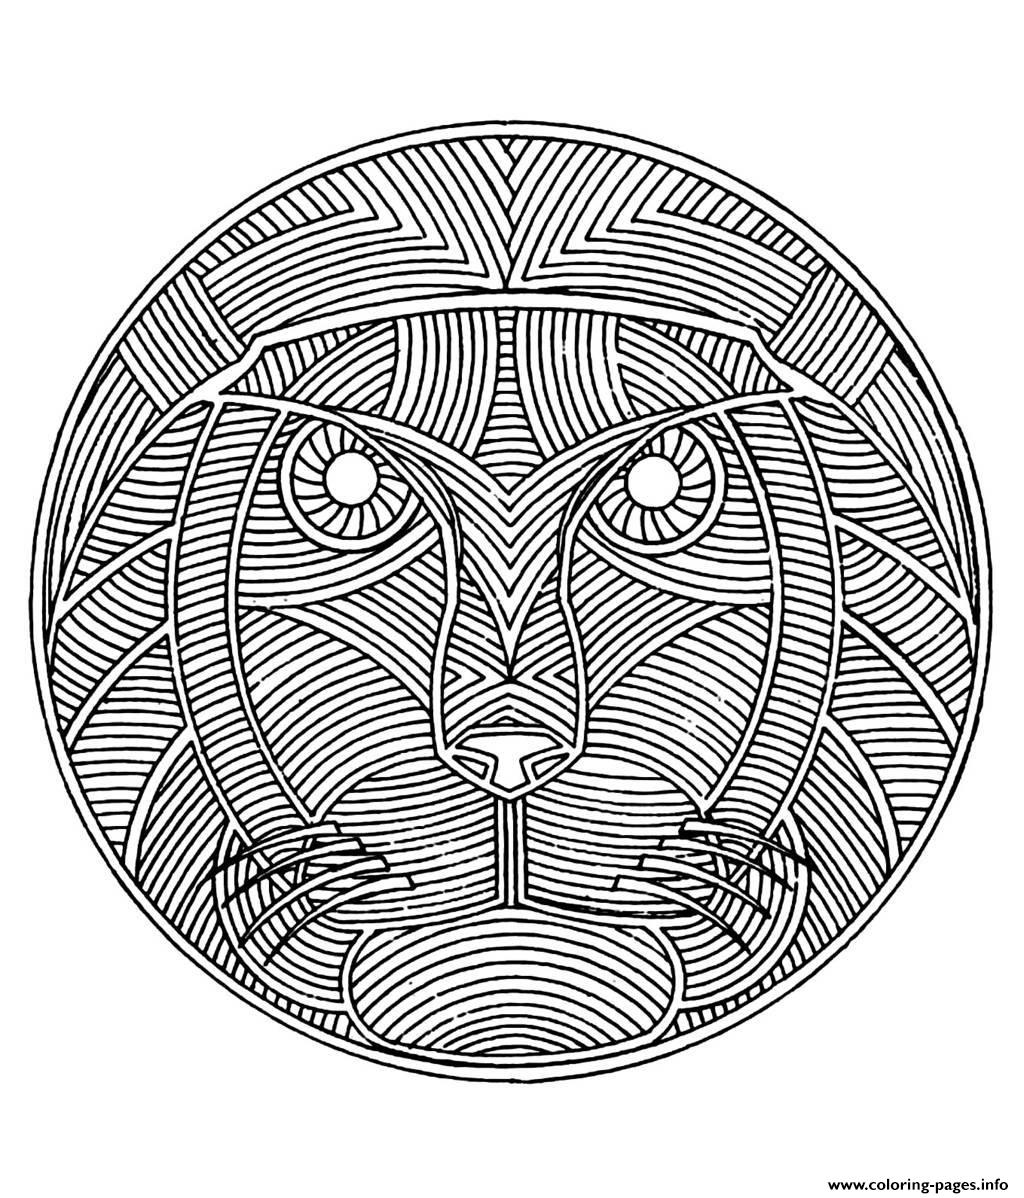 Free Mandala Difficult Adult To Print Lion Coloring Pages Printable - Lion-mandala-coloring-pages